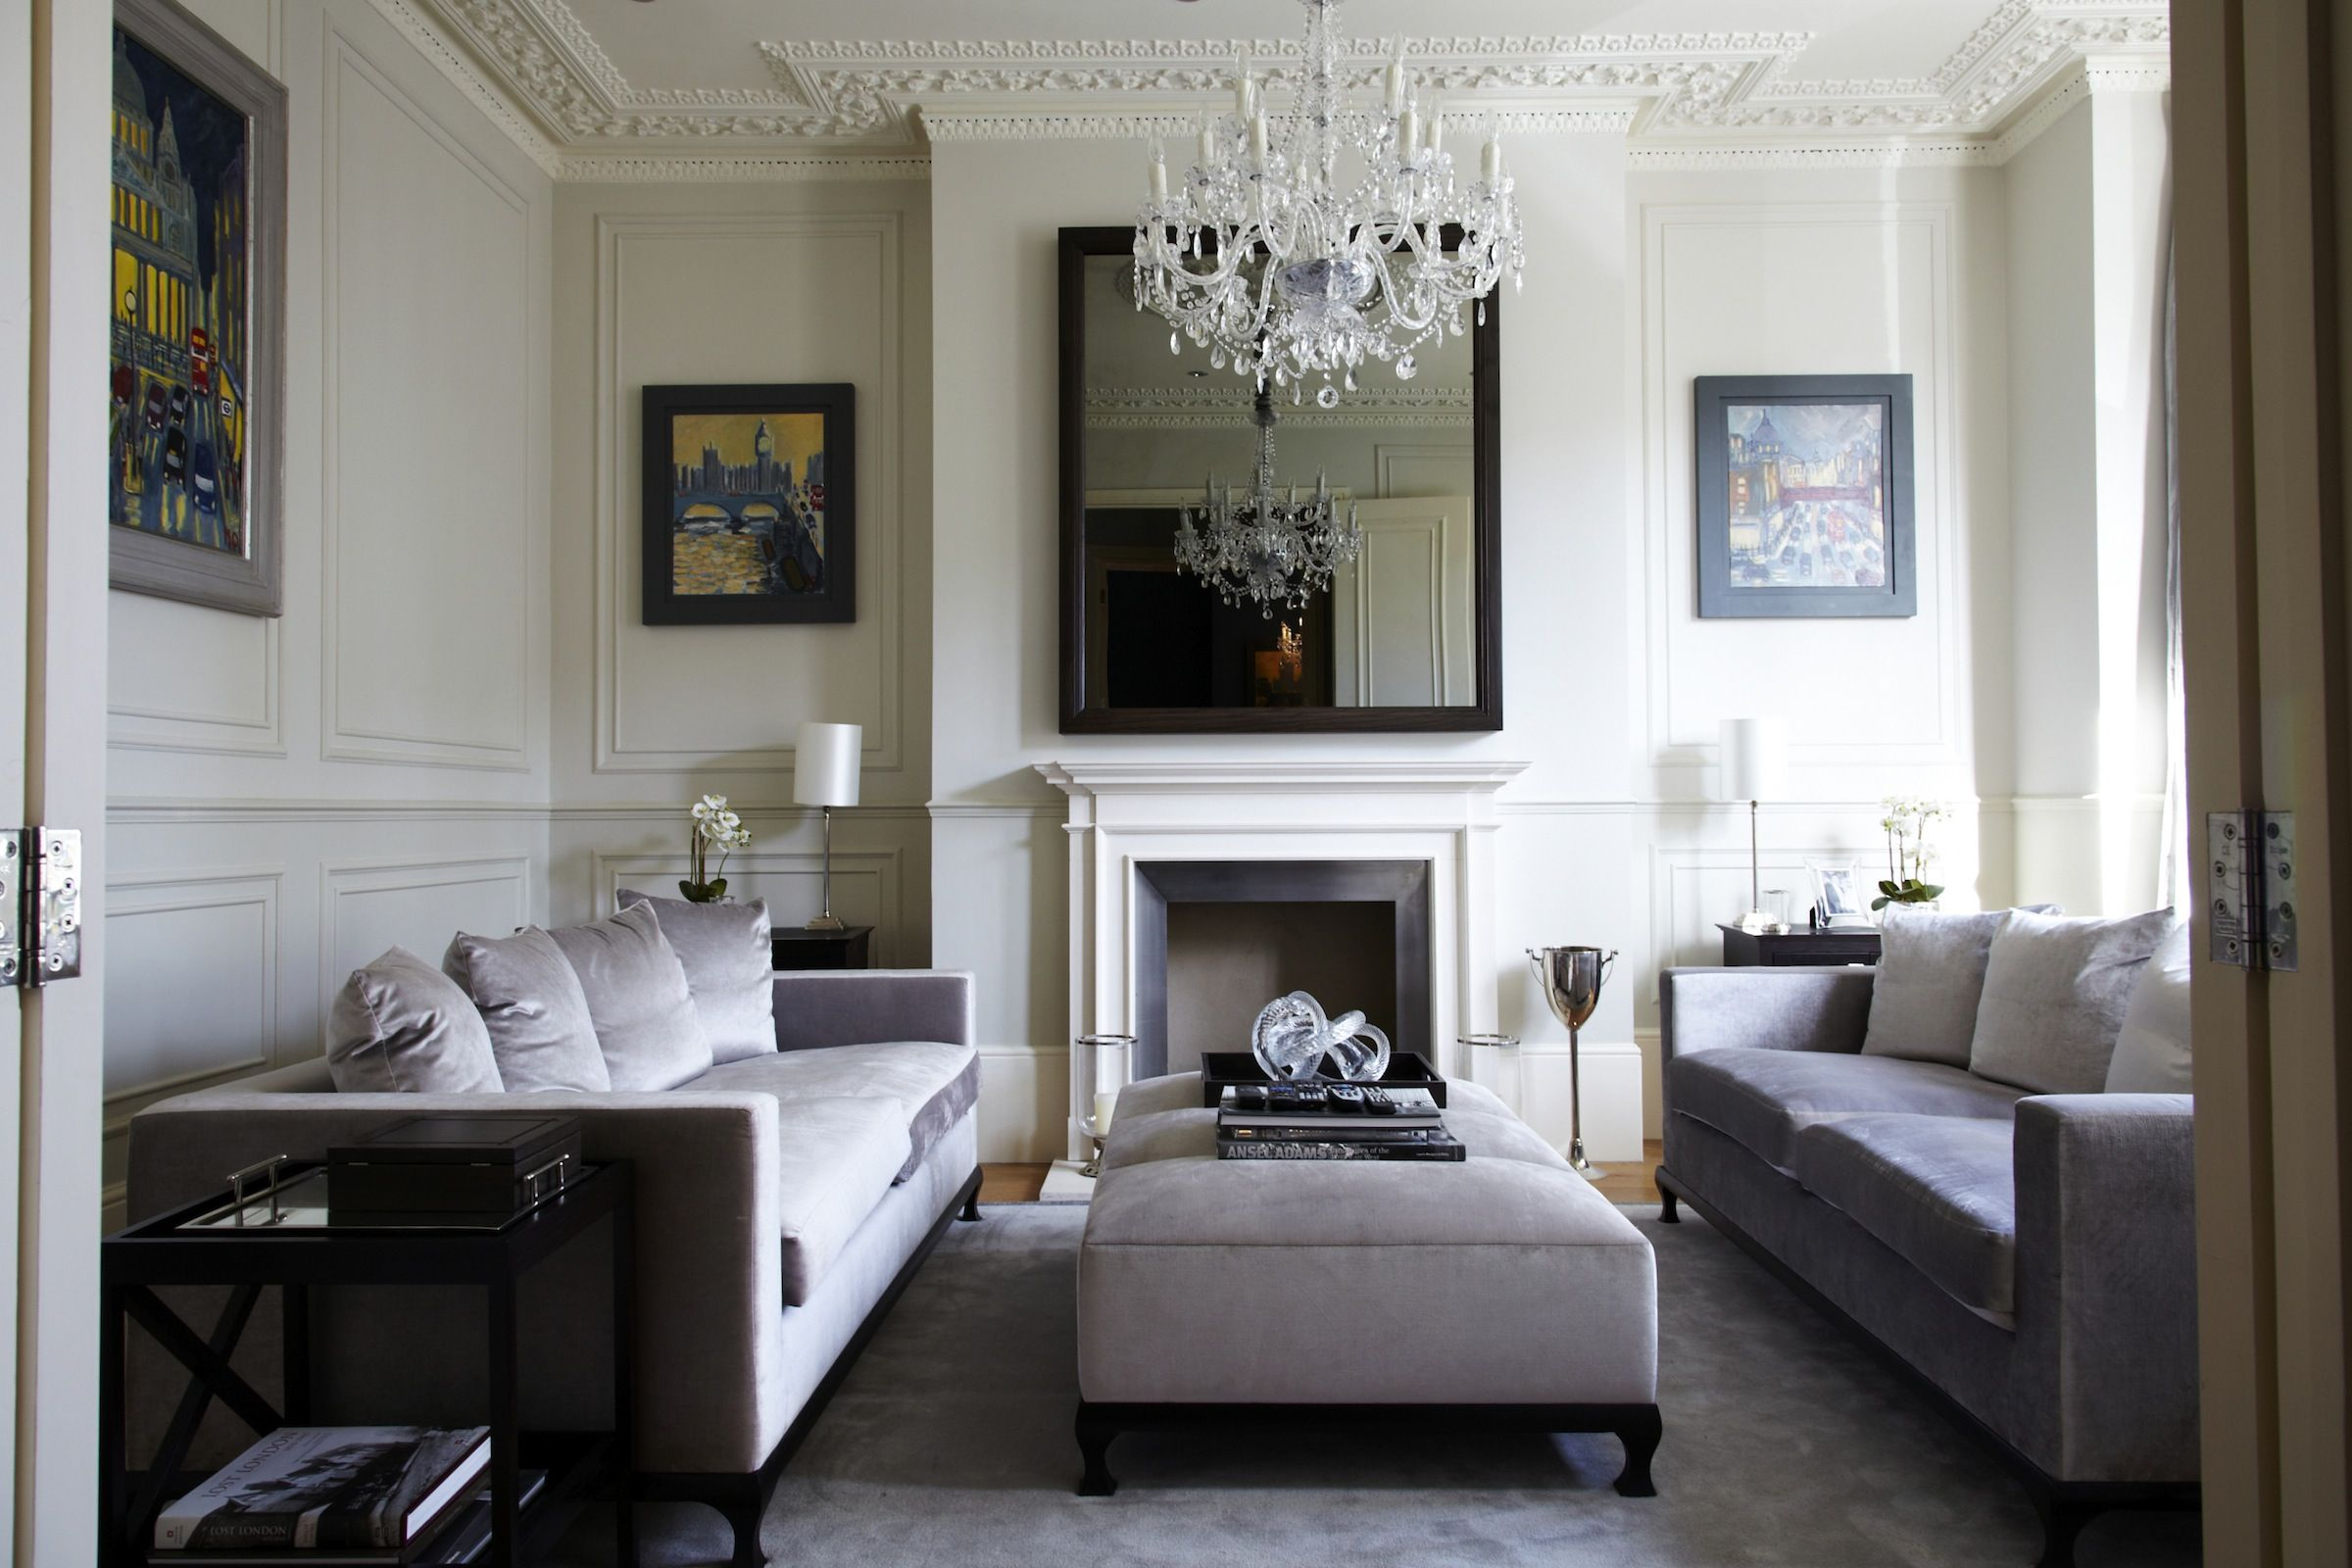 Living Room Contemporary Interiors Ideas For A Plain Wall Victorian Chic House With Modern Twist 517 Pinterest Interior Design 2